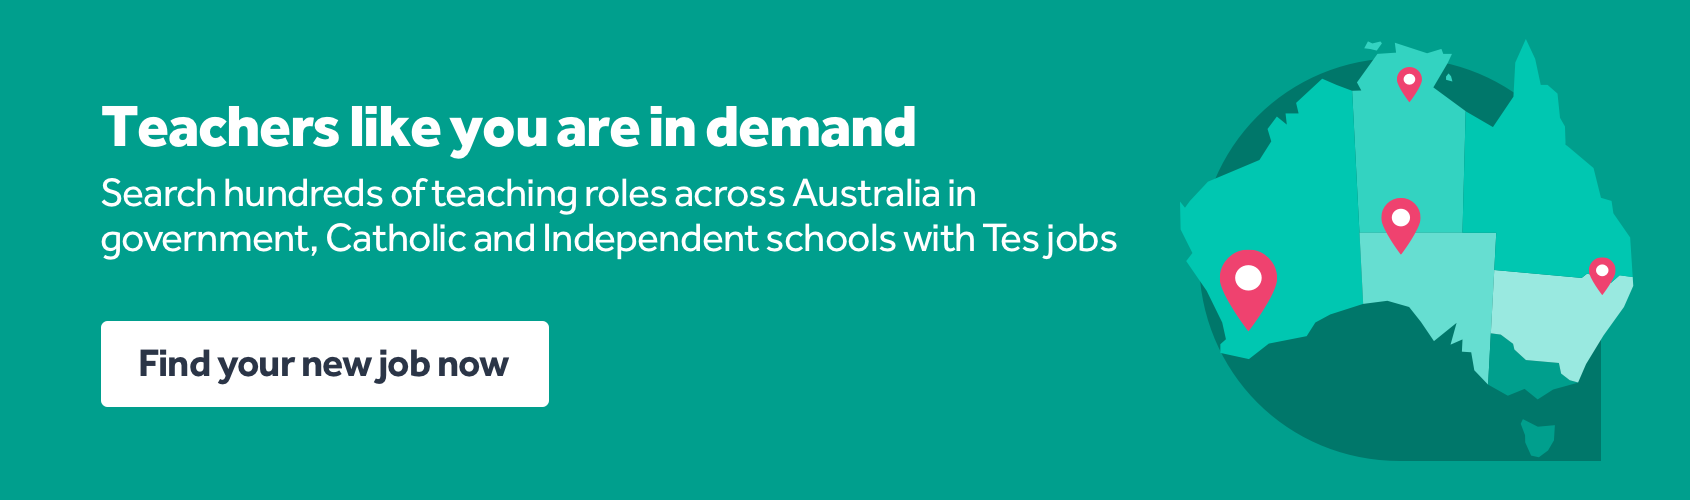 Teachers like you are in demand - Tes